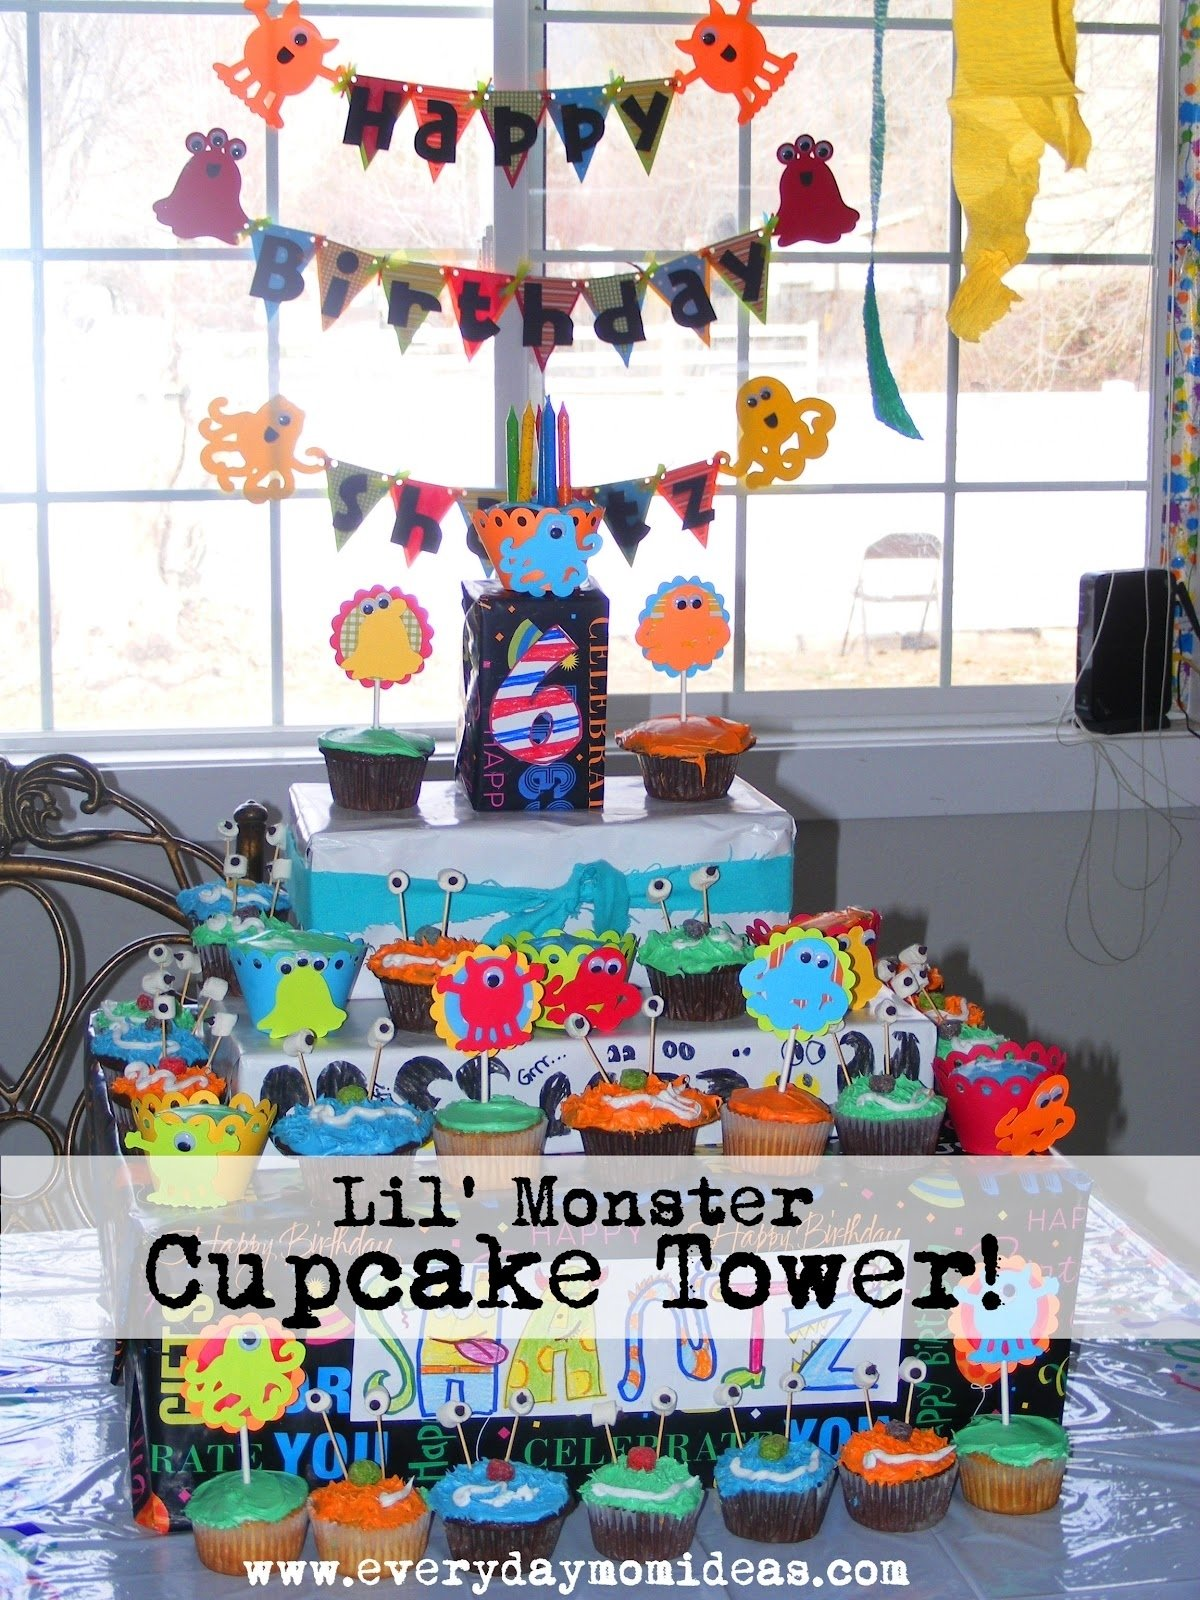 10 Fabulous Birthday Party Ideas For 8 Year Old Boy little monster bash birthday party ideas everyday mom ideas 9 2021